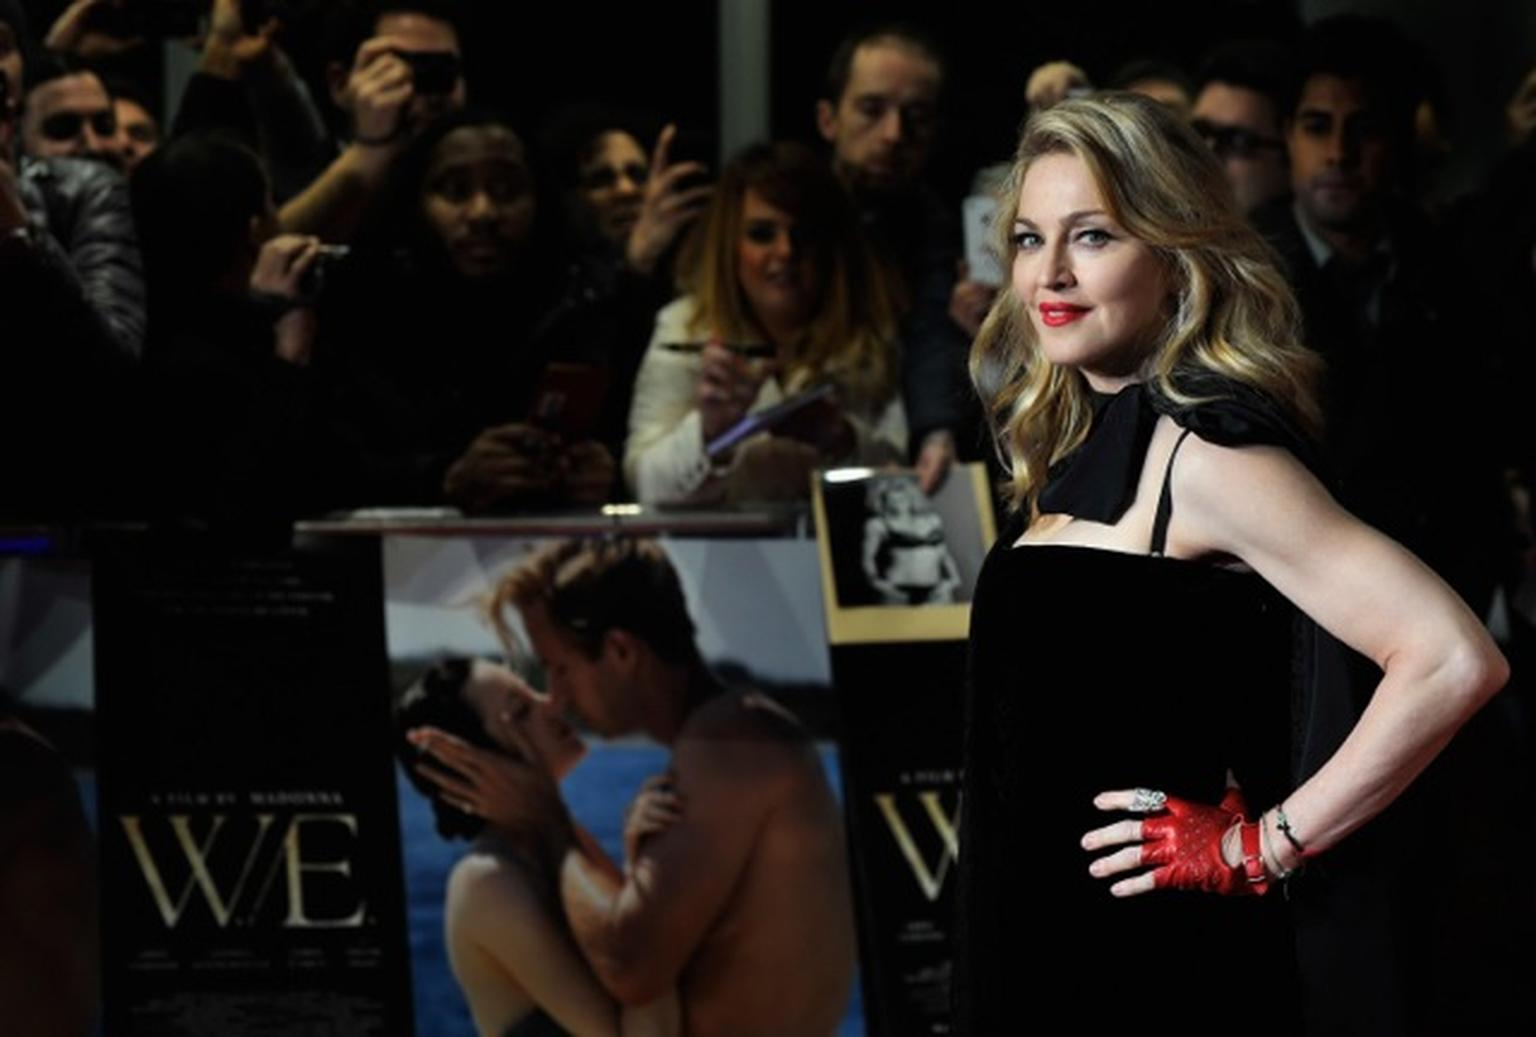 Madonna - Van Cleef & Arpels - Photo by Gareth Cattermole Getty Images 136764530.jpeg Madonna - Van Cleef & Arpels  jpeg